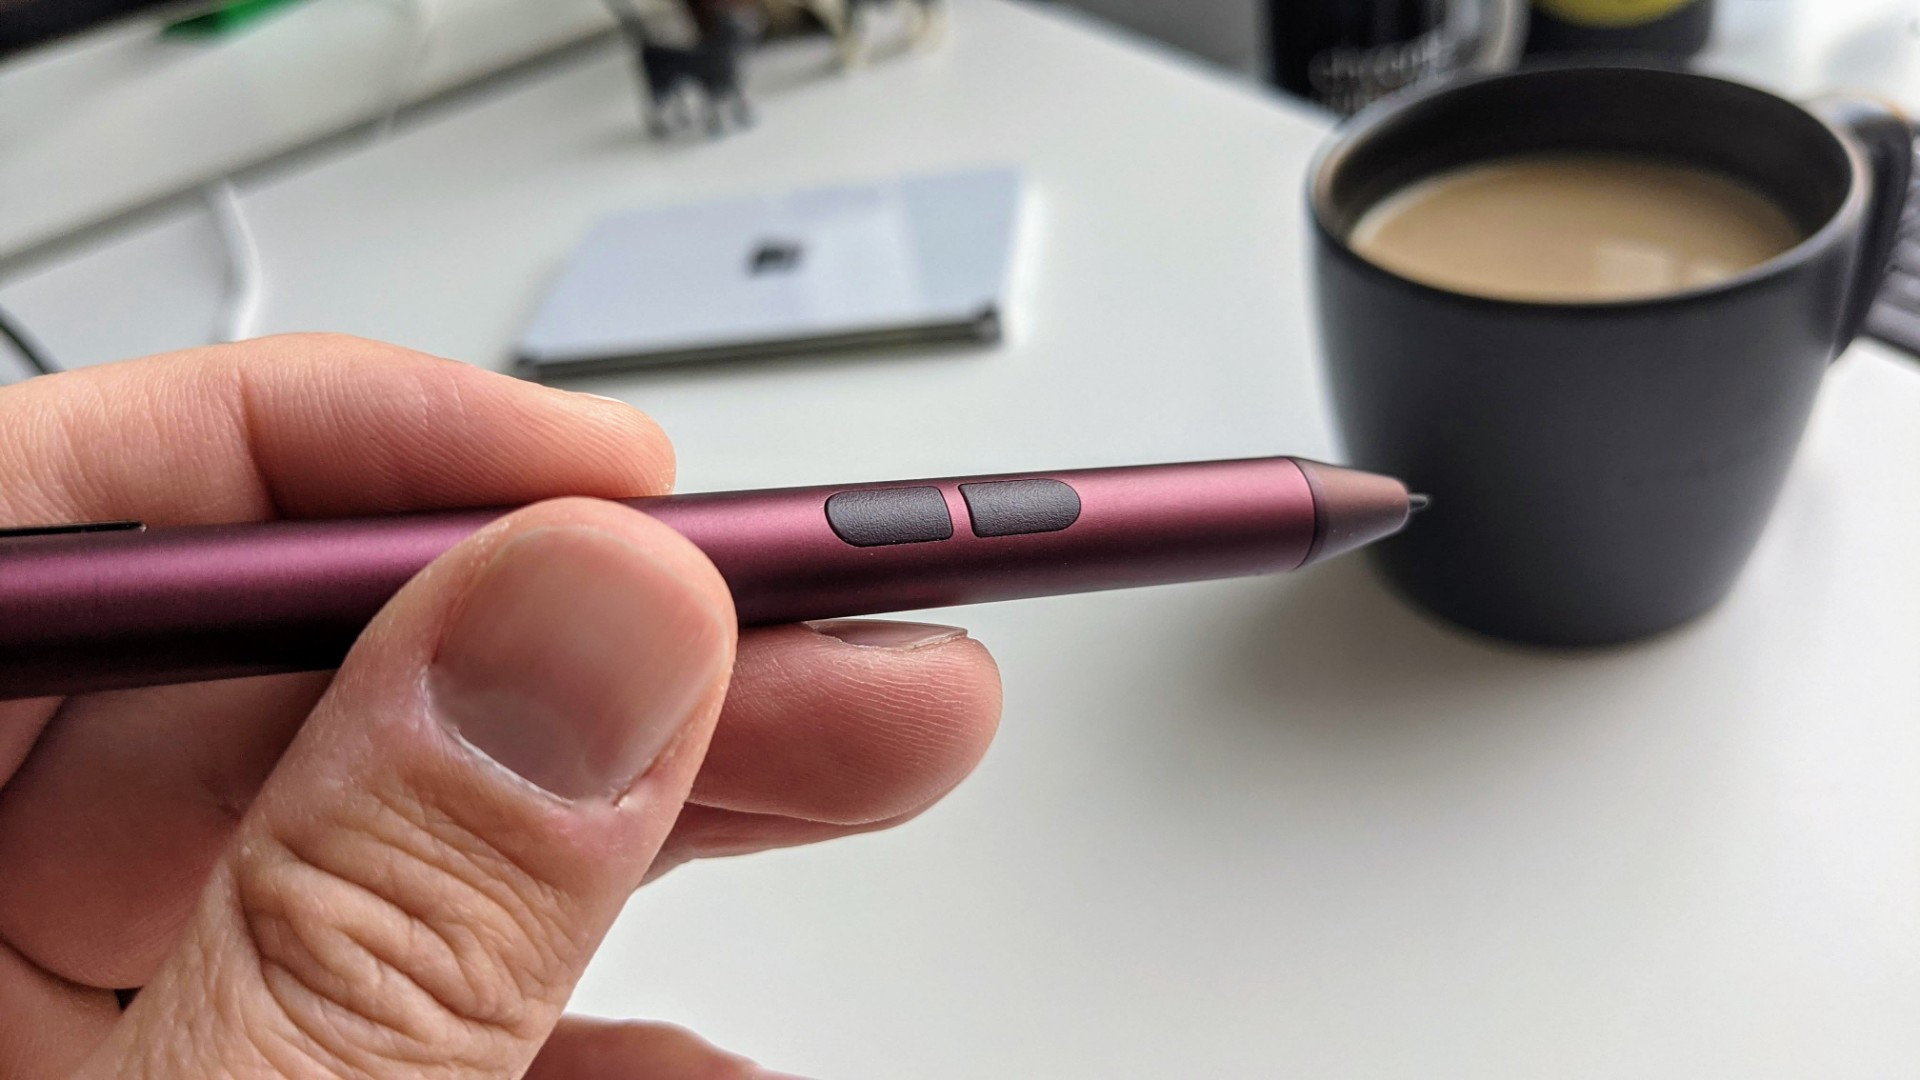 New abilities are coming for Chromebook stylus buttons